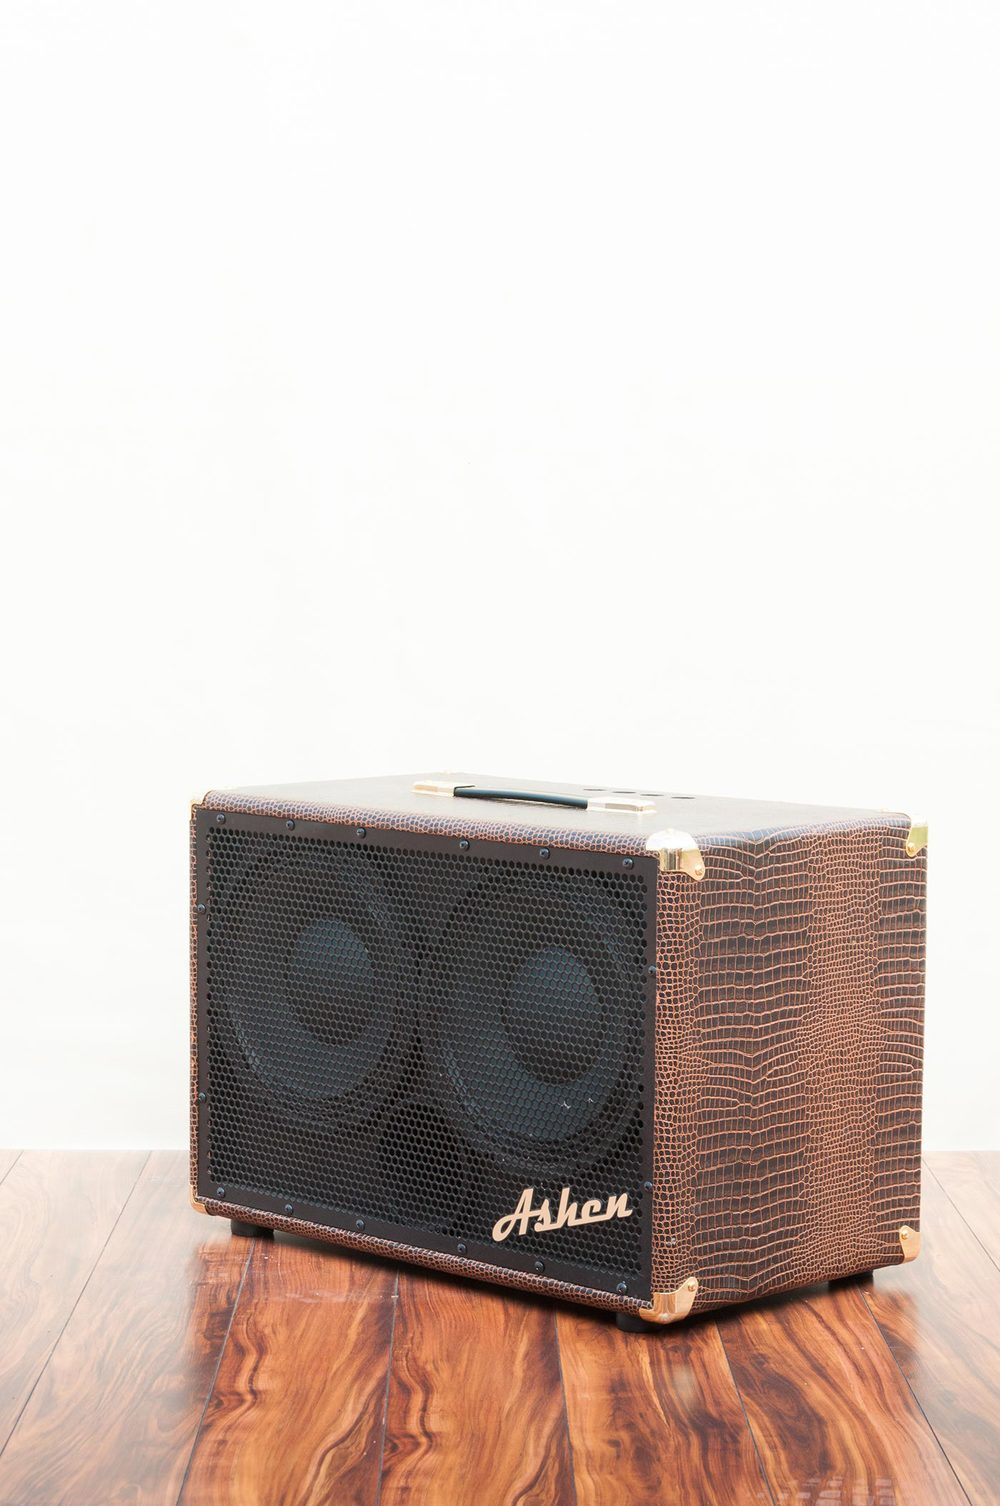 Ashen-Amps-Product-Shoot-14.jpg